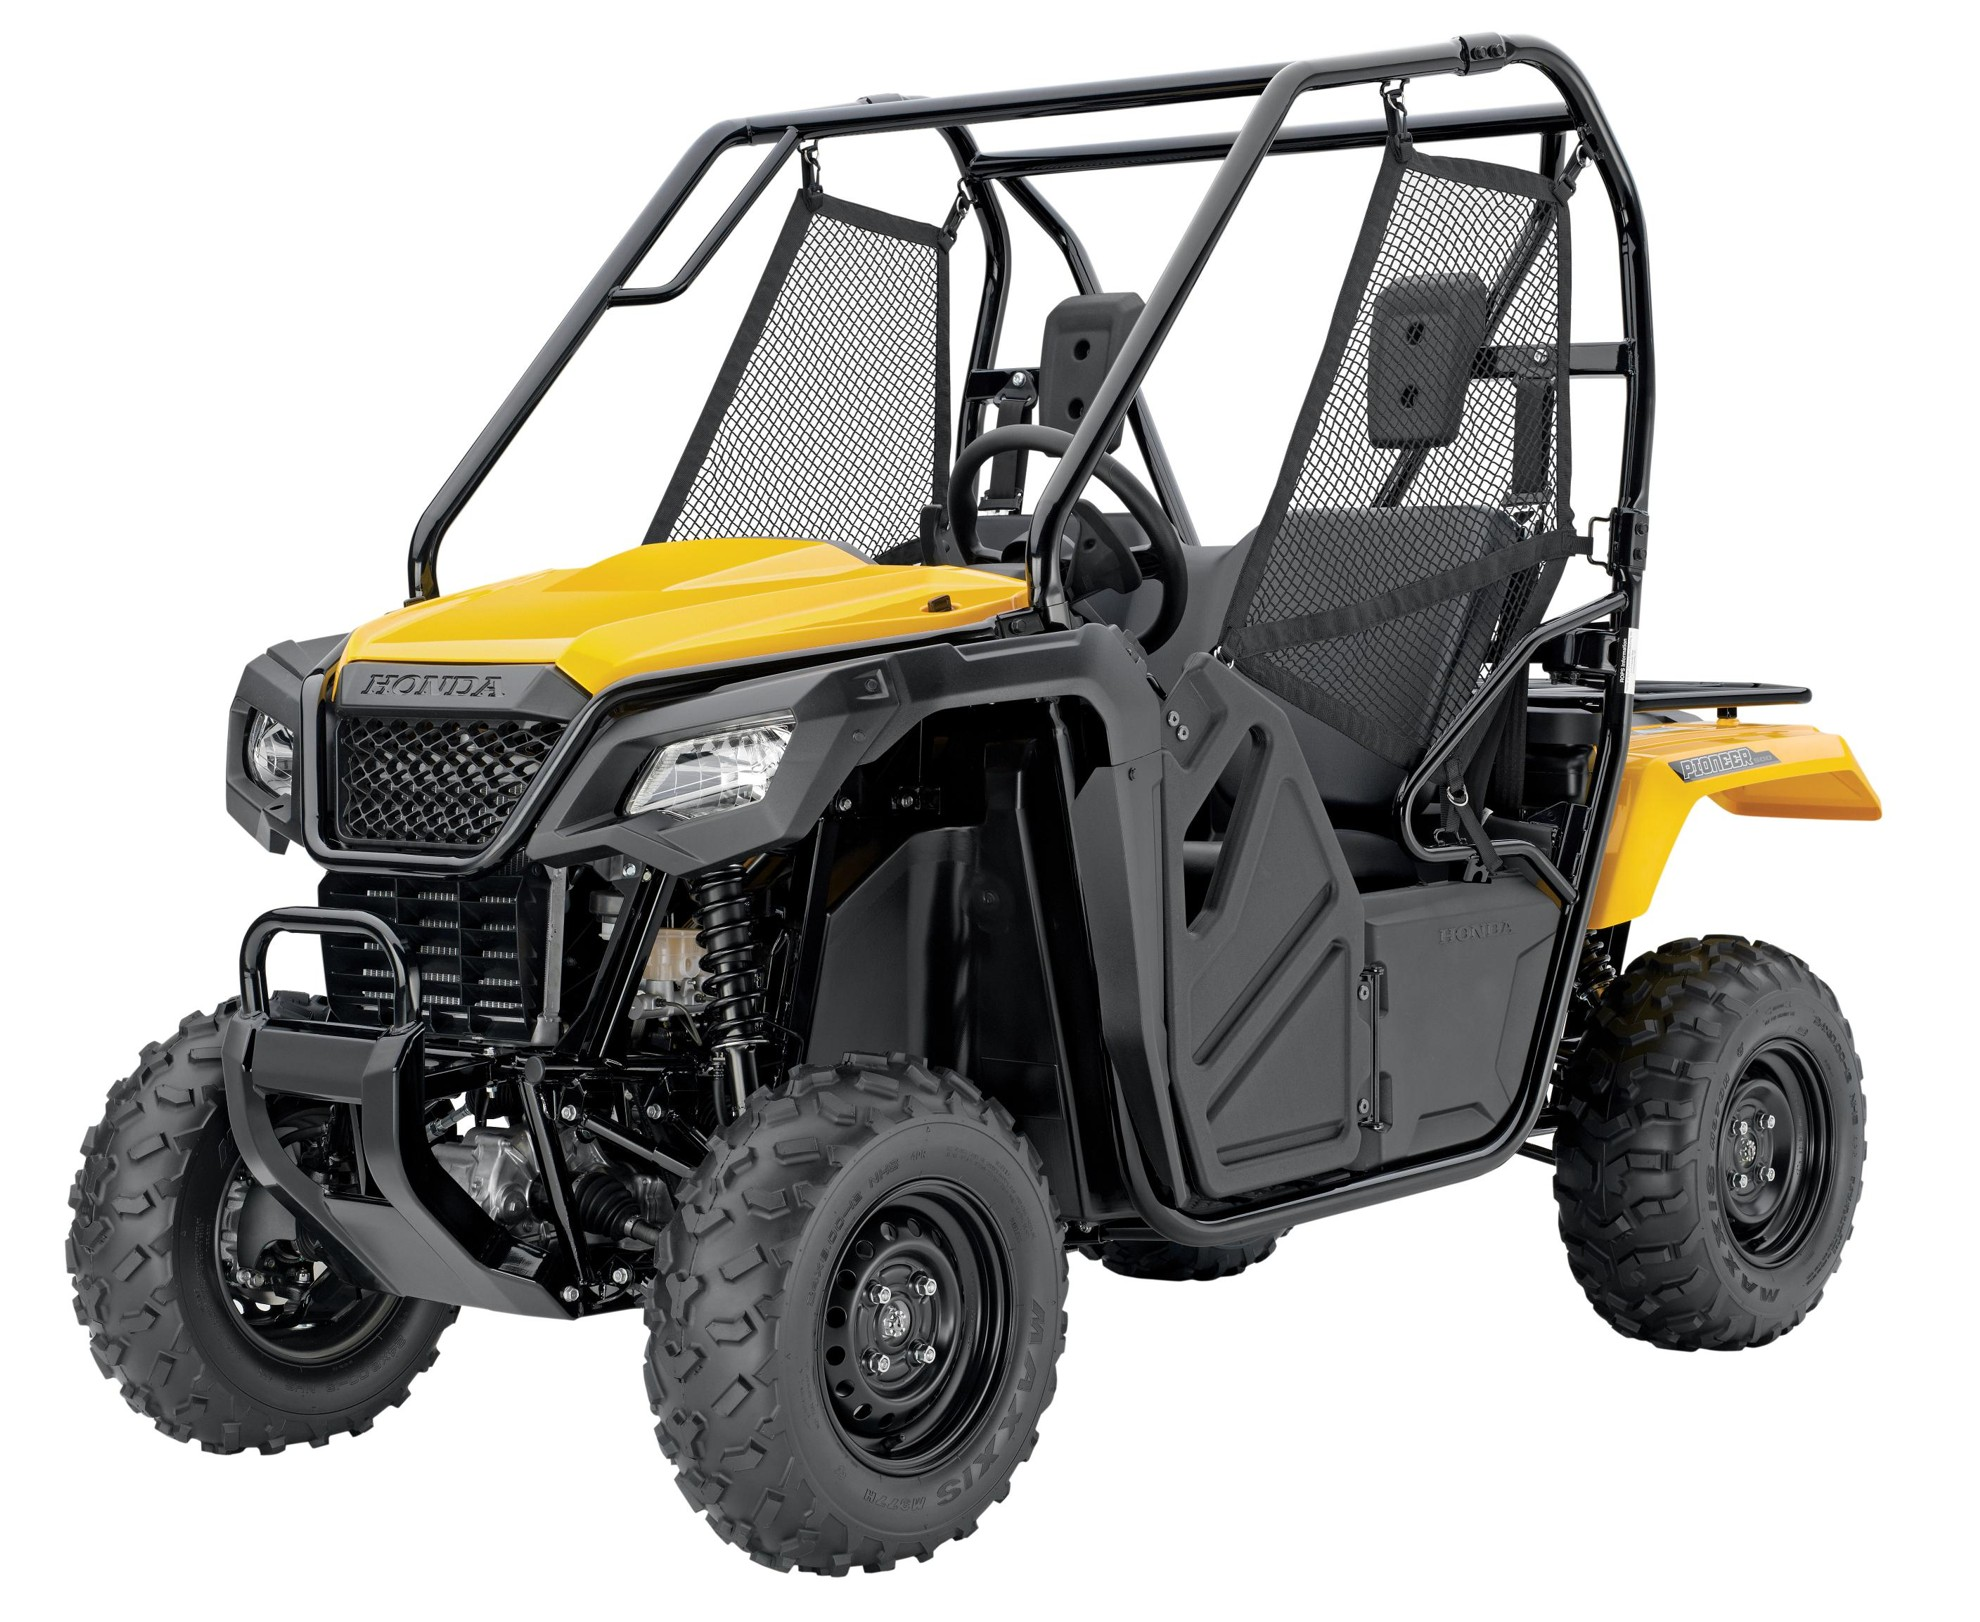 2015 honda pioneer 500 side by side. Black Bedroom Furniture Sets. Home Design Ideas